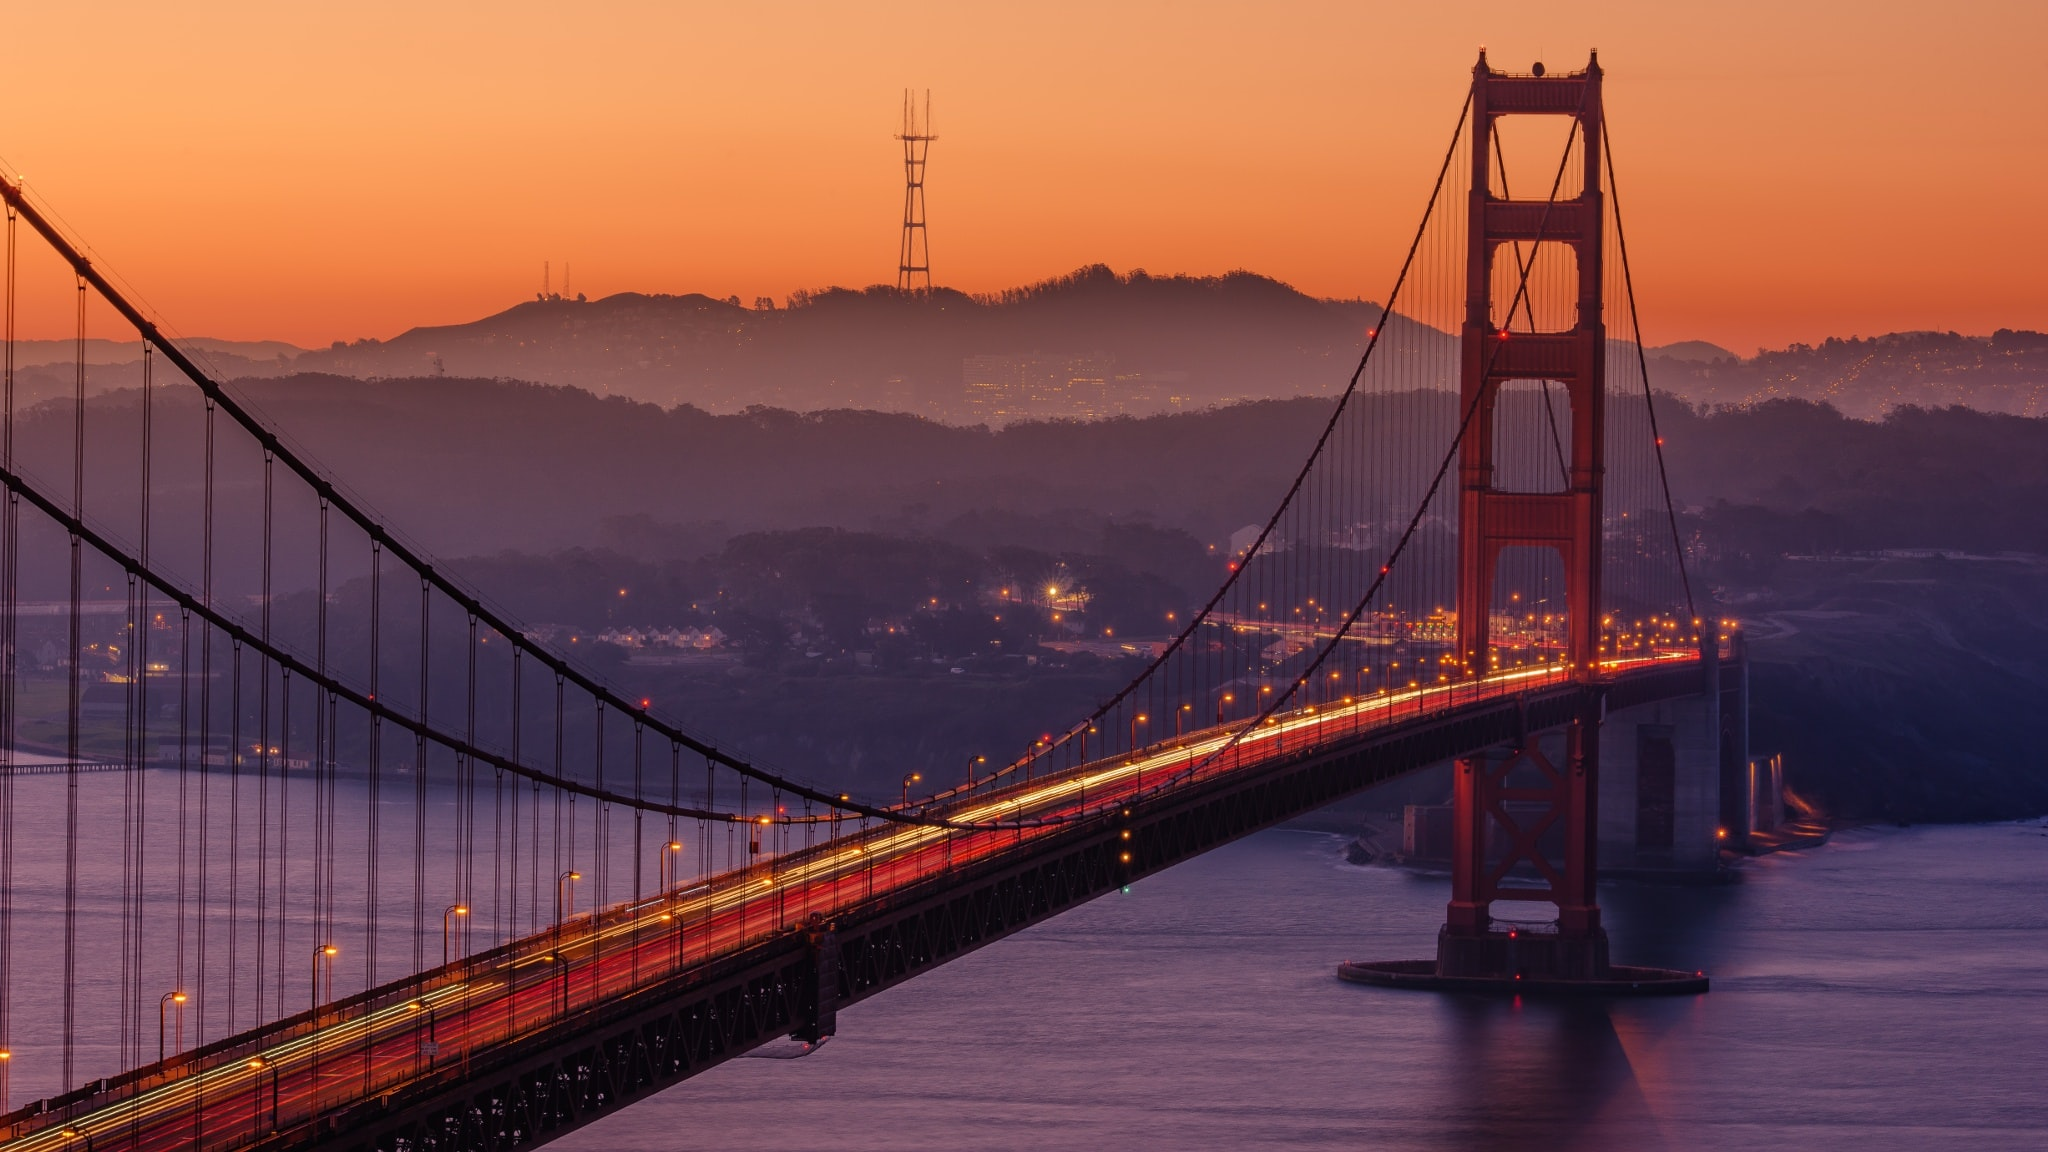 Golden Gate Bridge during sunset